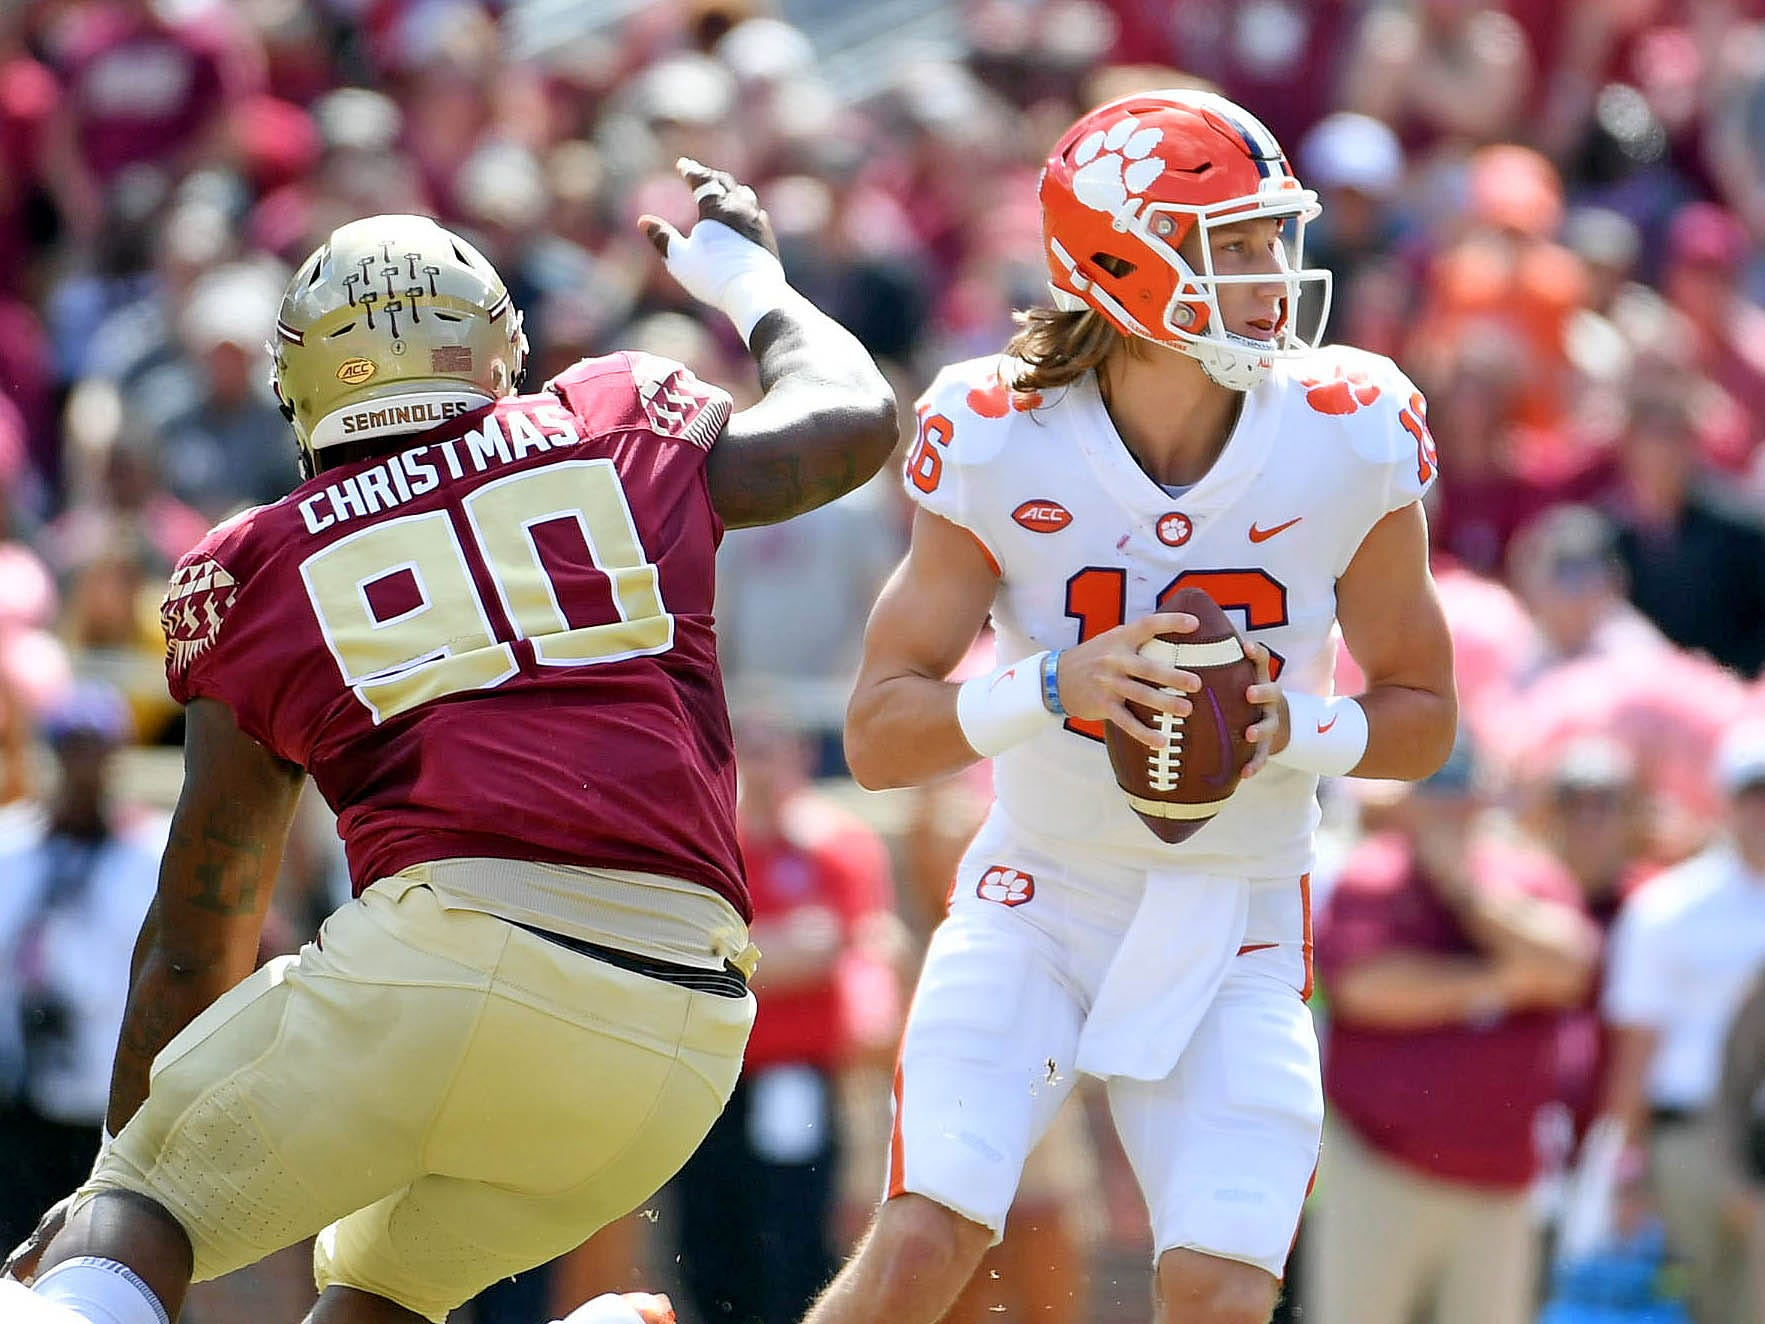 Oct 27, 2018; Tallahassee, FL, USA; Clemson Tigers quarterback Trevor Lawrence (16) looks to throw as he is pressured by Florida State Seminoles defensive tackle Demarcus Christmas (90) during the first half at Doak Campbell Stadium.